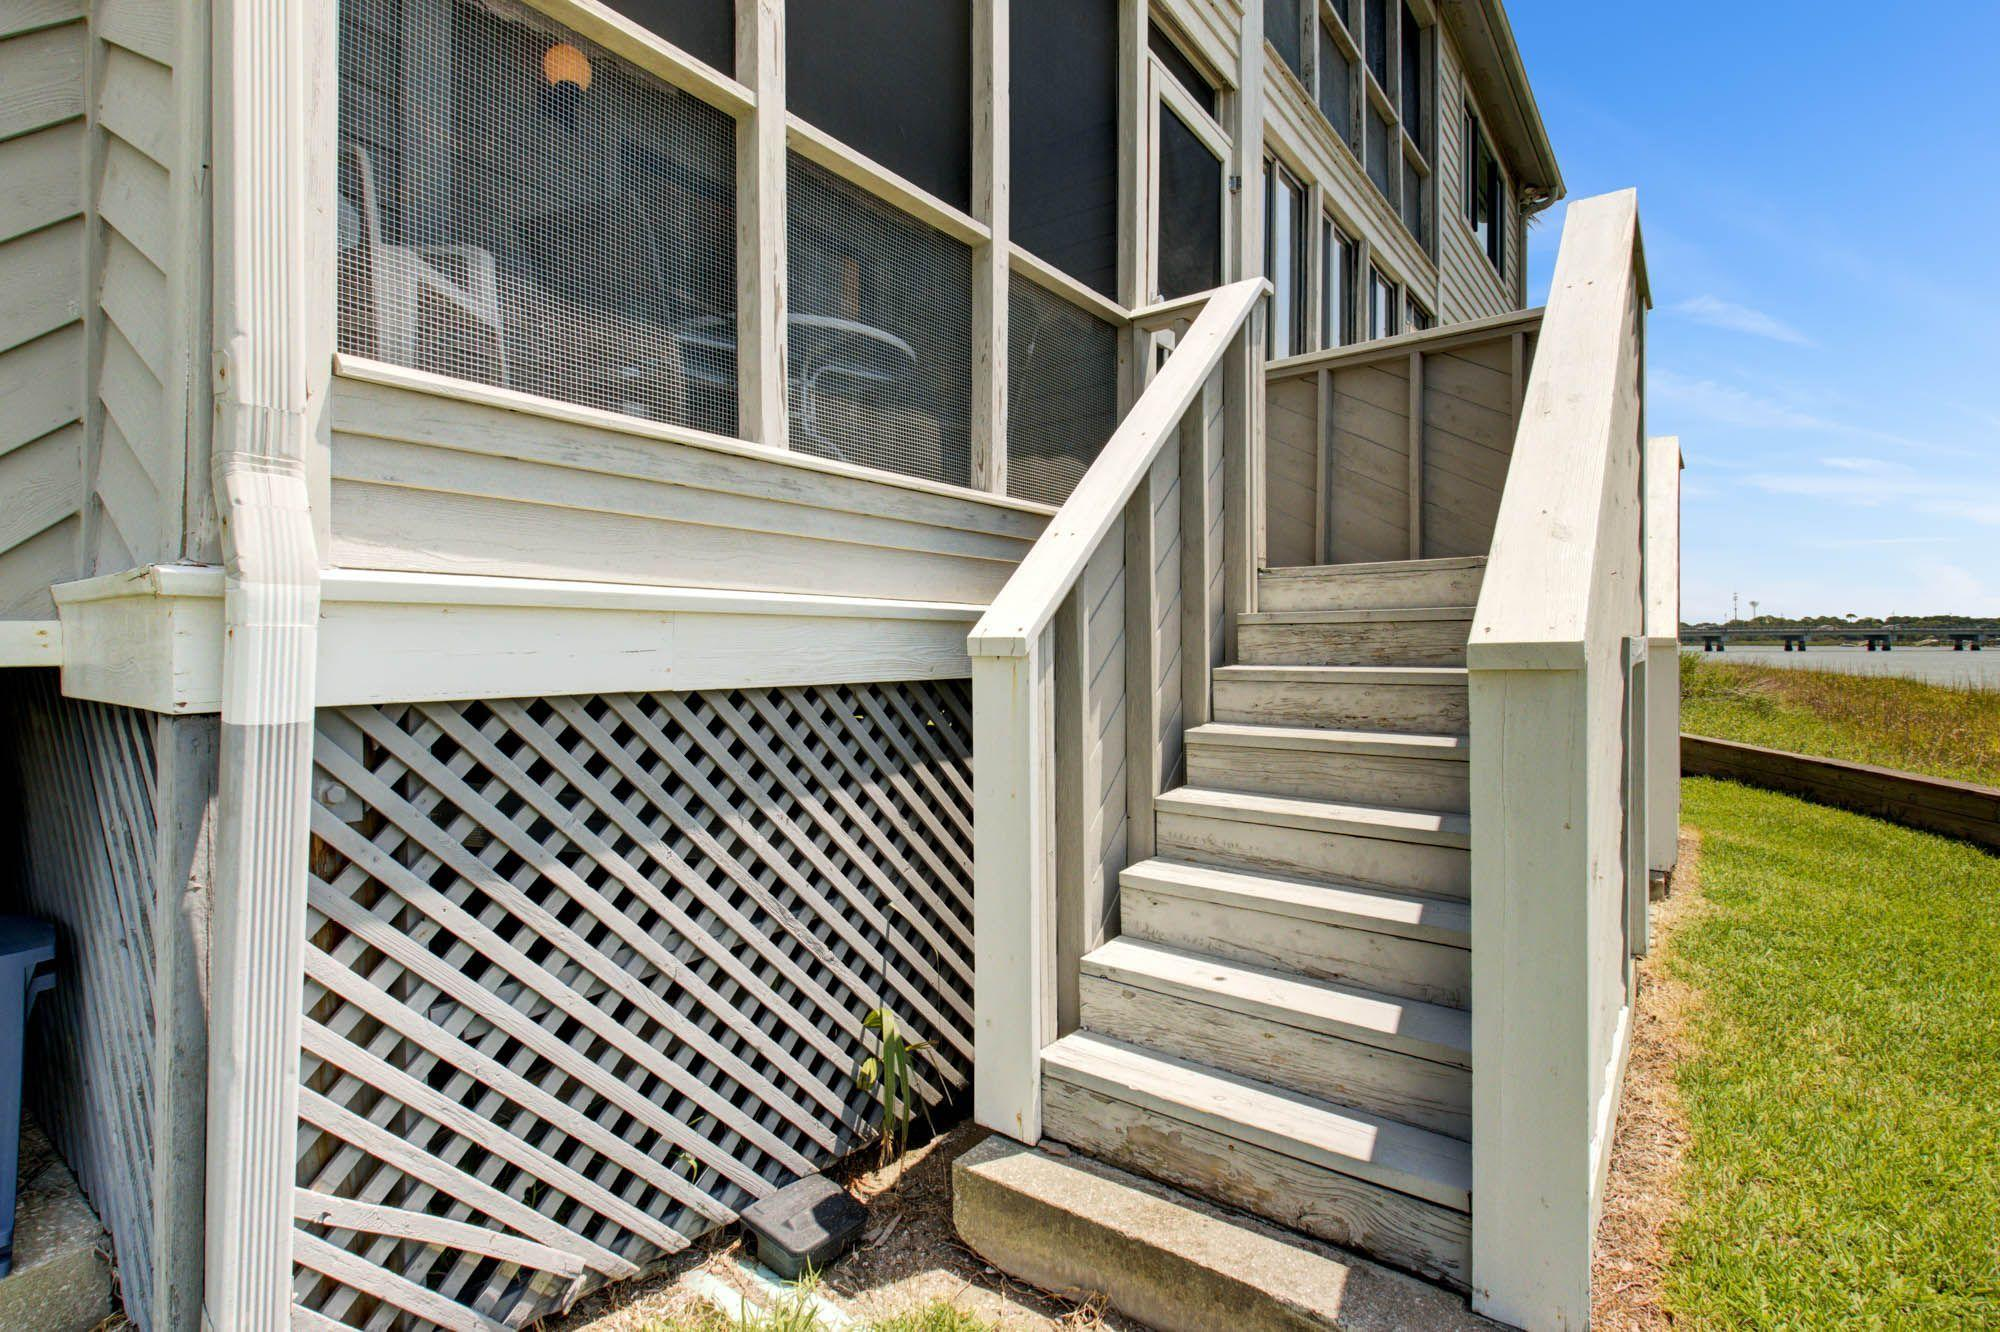 Mariners Cay Homes For Sale - 51 Mariners Cay, Folly Beach, SC - 11